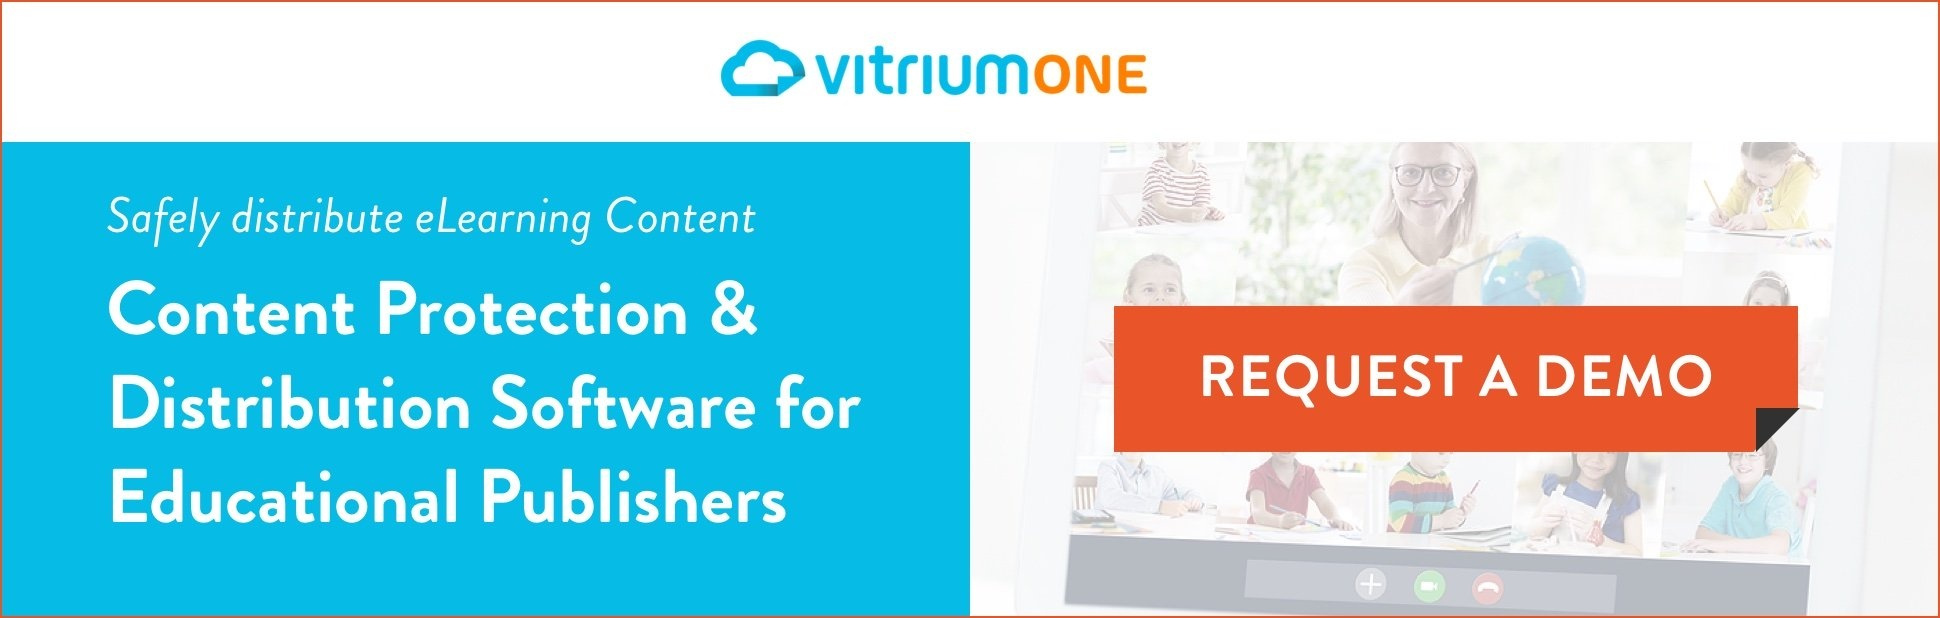 vitriumone-e-learning-content-protection-and-distribution